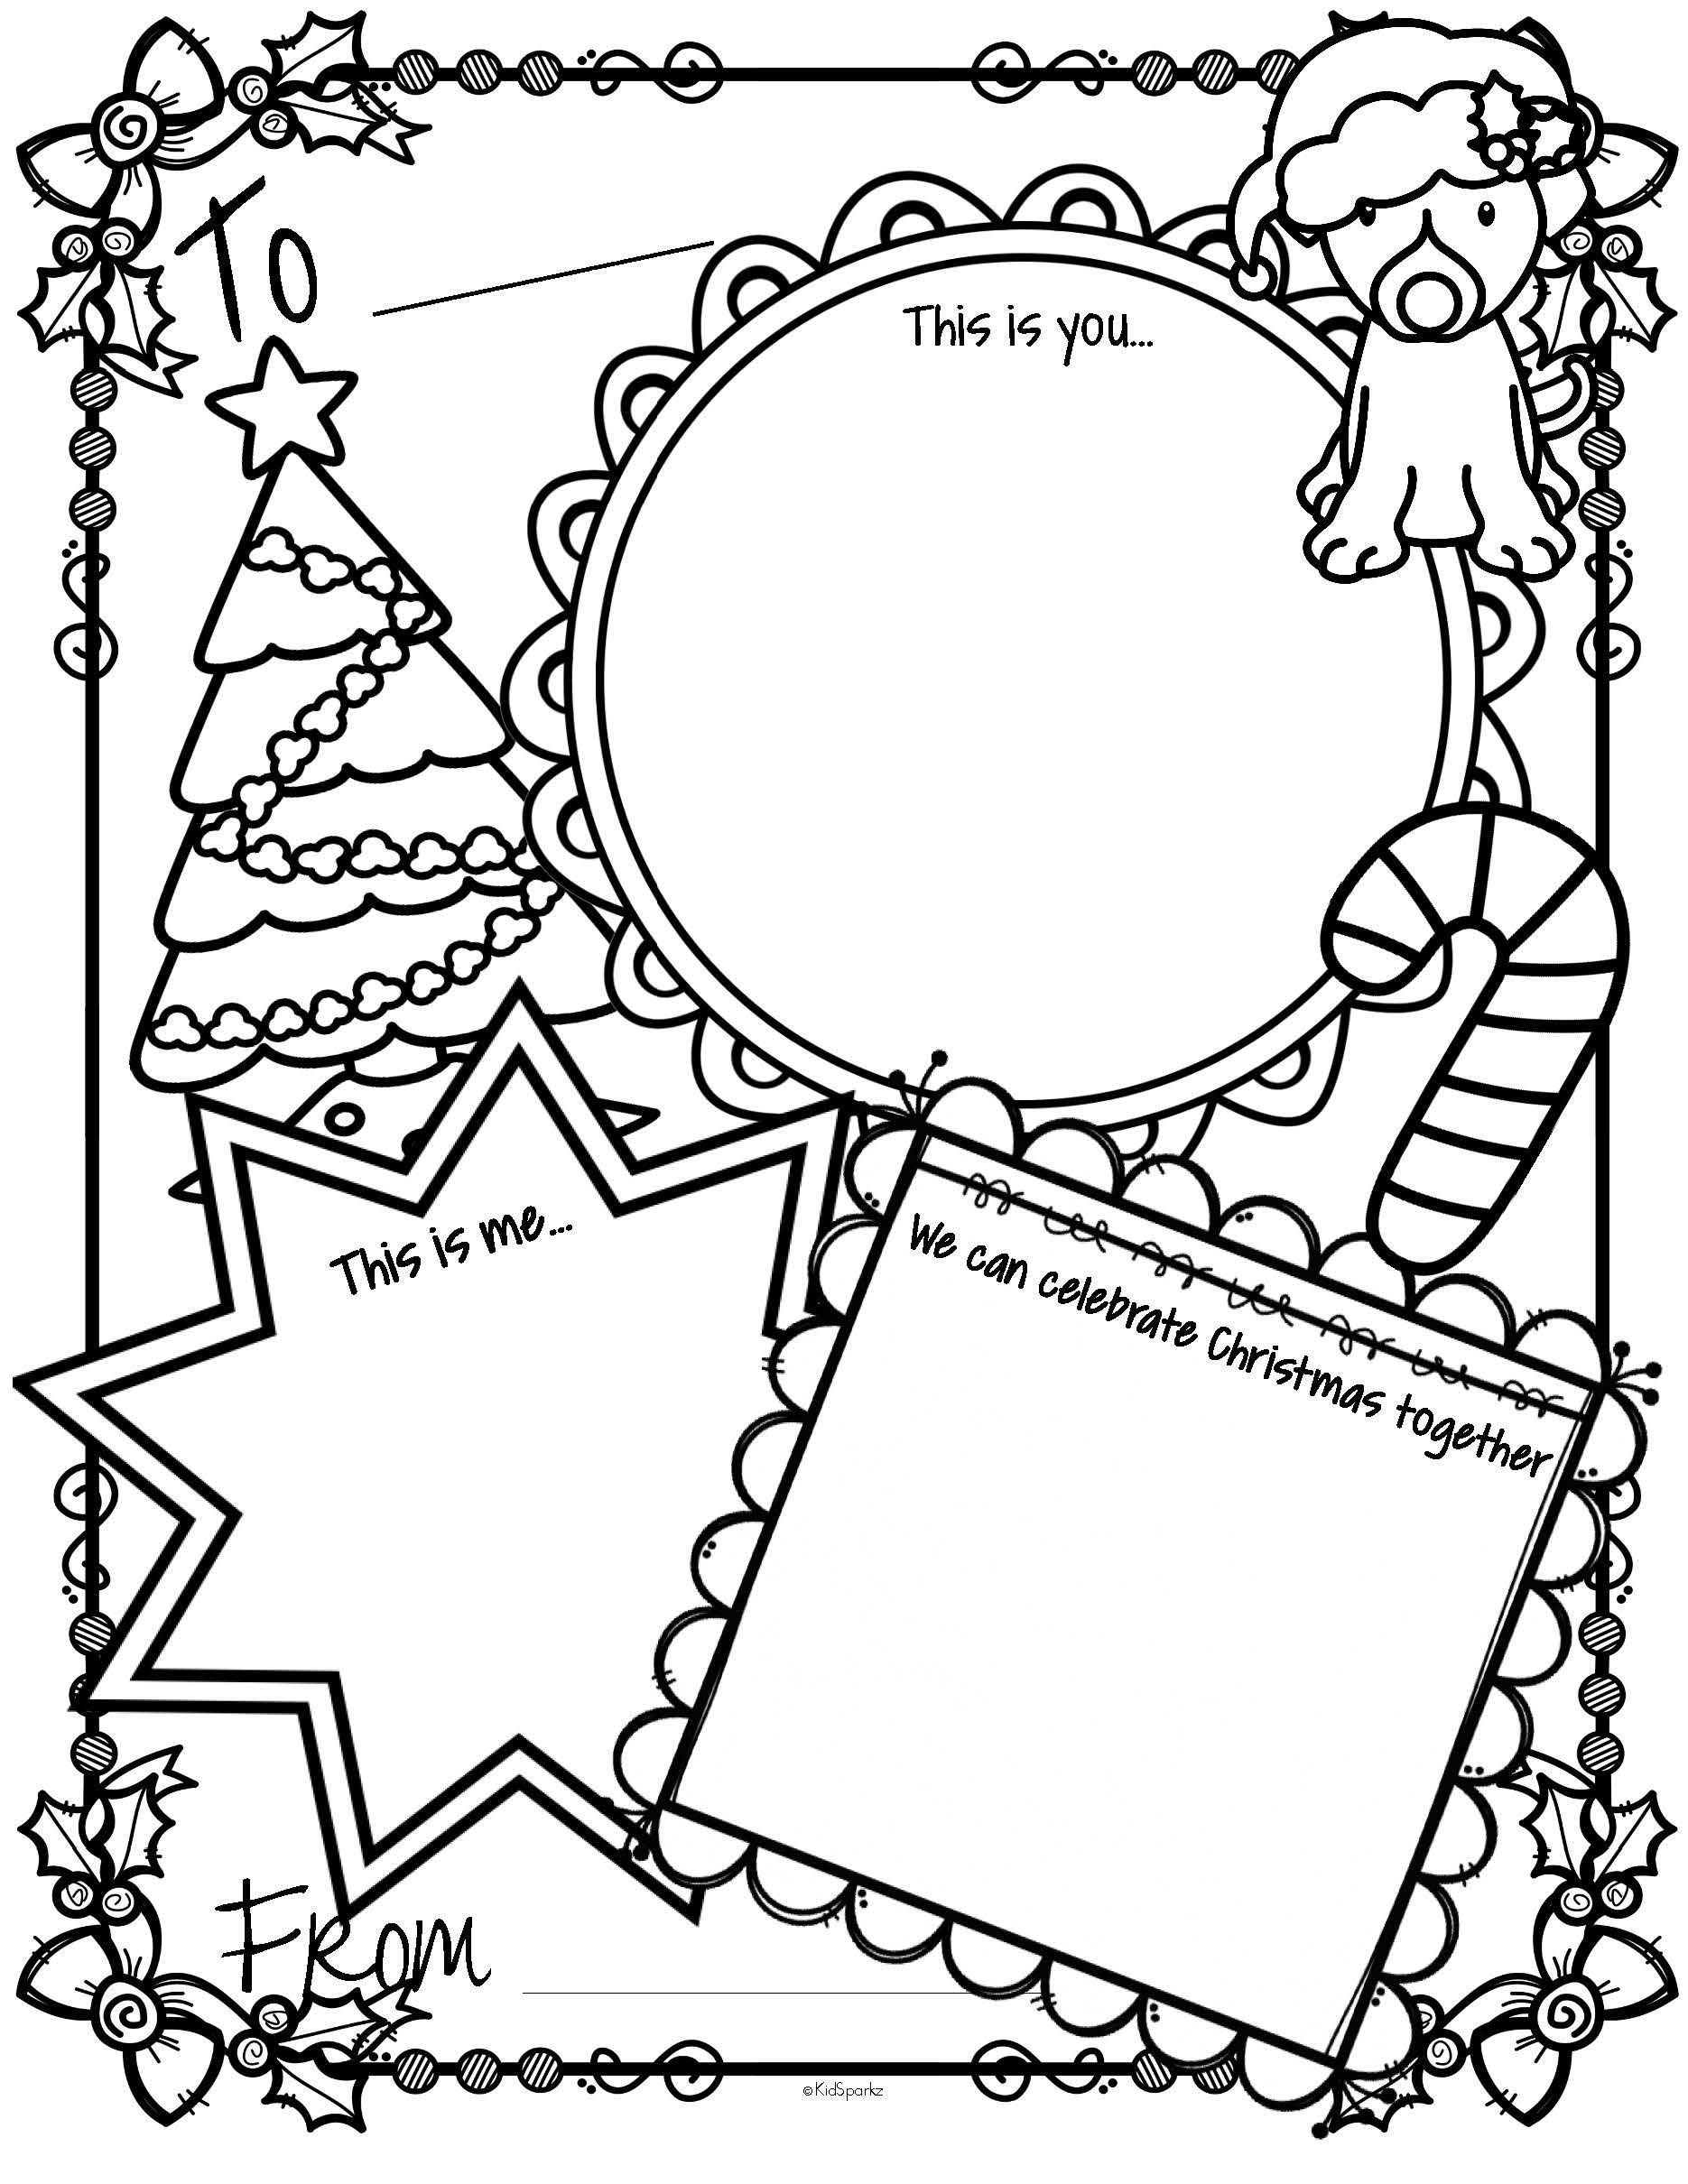 Free Full Page Christmas Card Activity Printable Christmas Coloring Cards Christmas Cards Drawing Christmas Preschool Theme